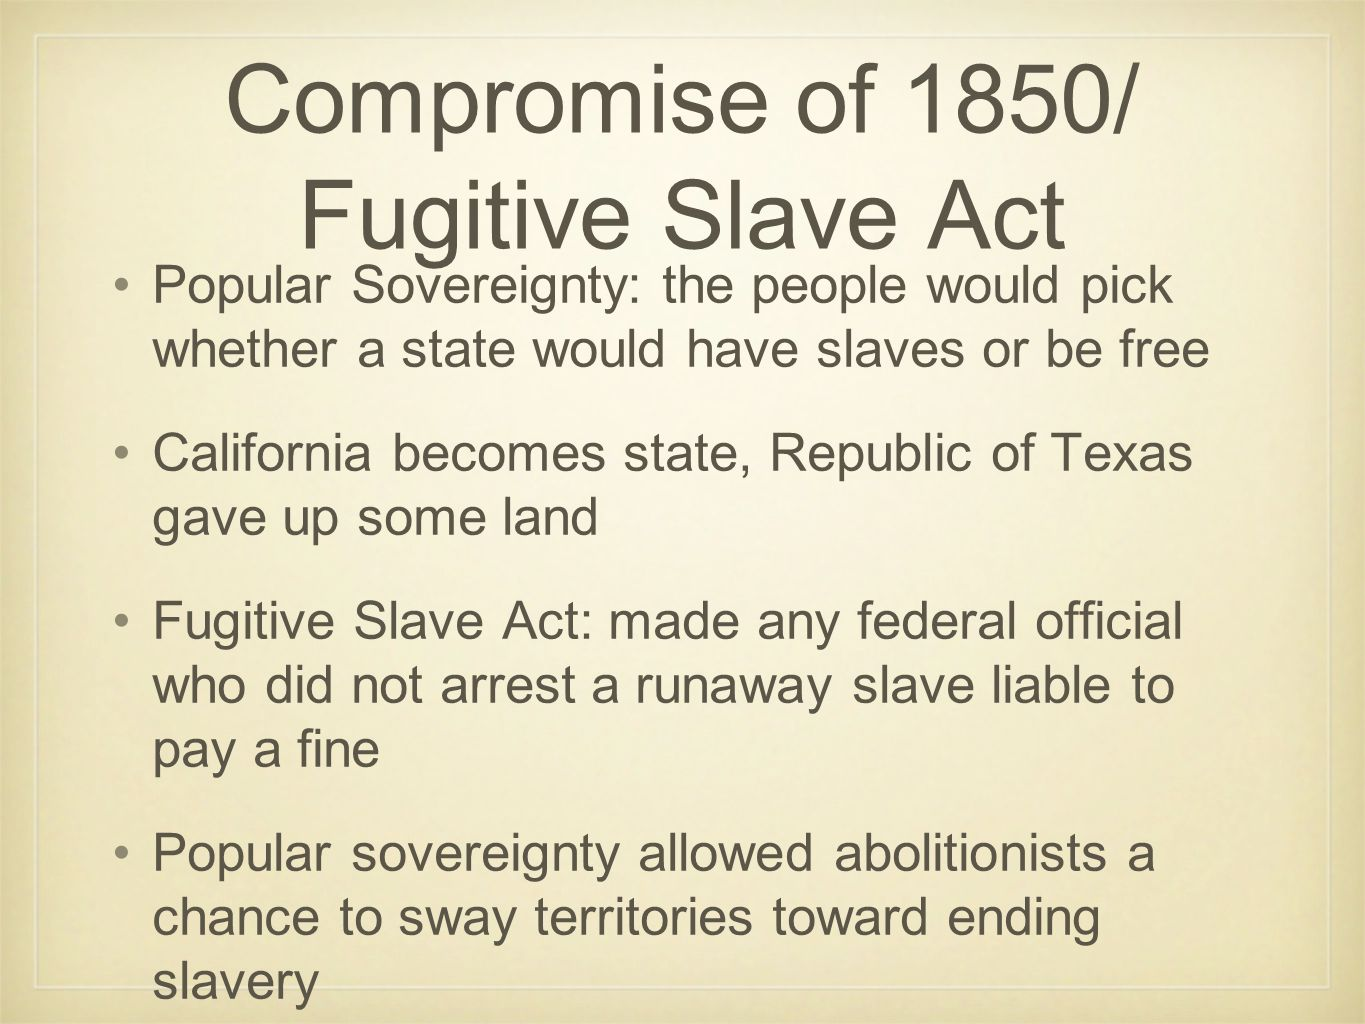 Compromise of 1850/ Fugitive Slave Act Popular Sovereignty: the people would pick whether a state would have slaves or be free California becomes state, Republic of Texas gave up some land Fugitive Slave Act: made any federal official who did not arrest a runaway slave liable to pay a fine Popular sovereignty allowed abolitionists a chance to sway territories toward ending slavery